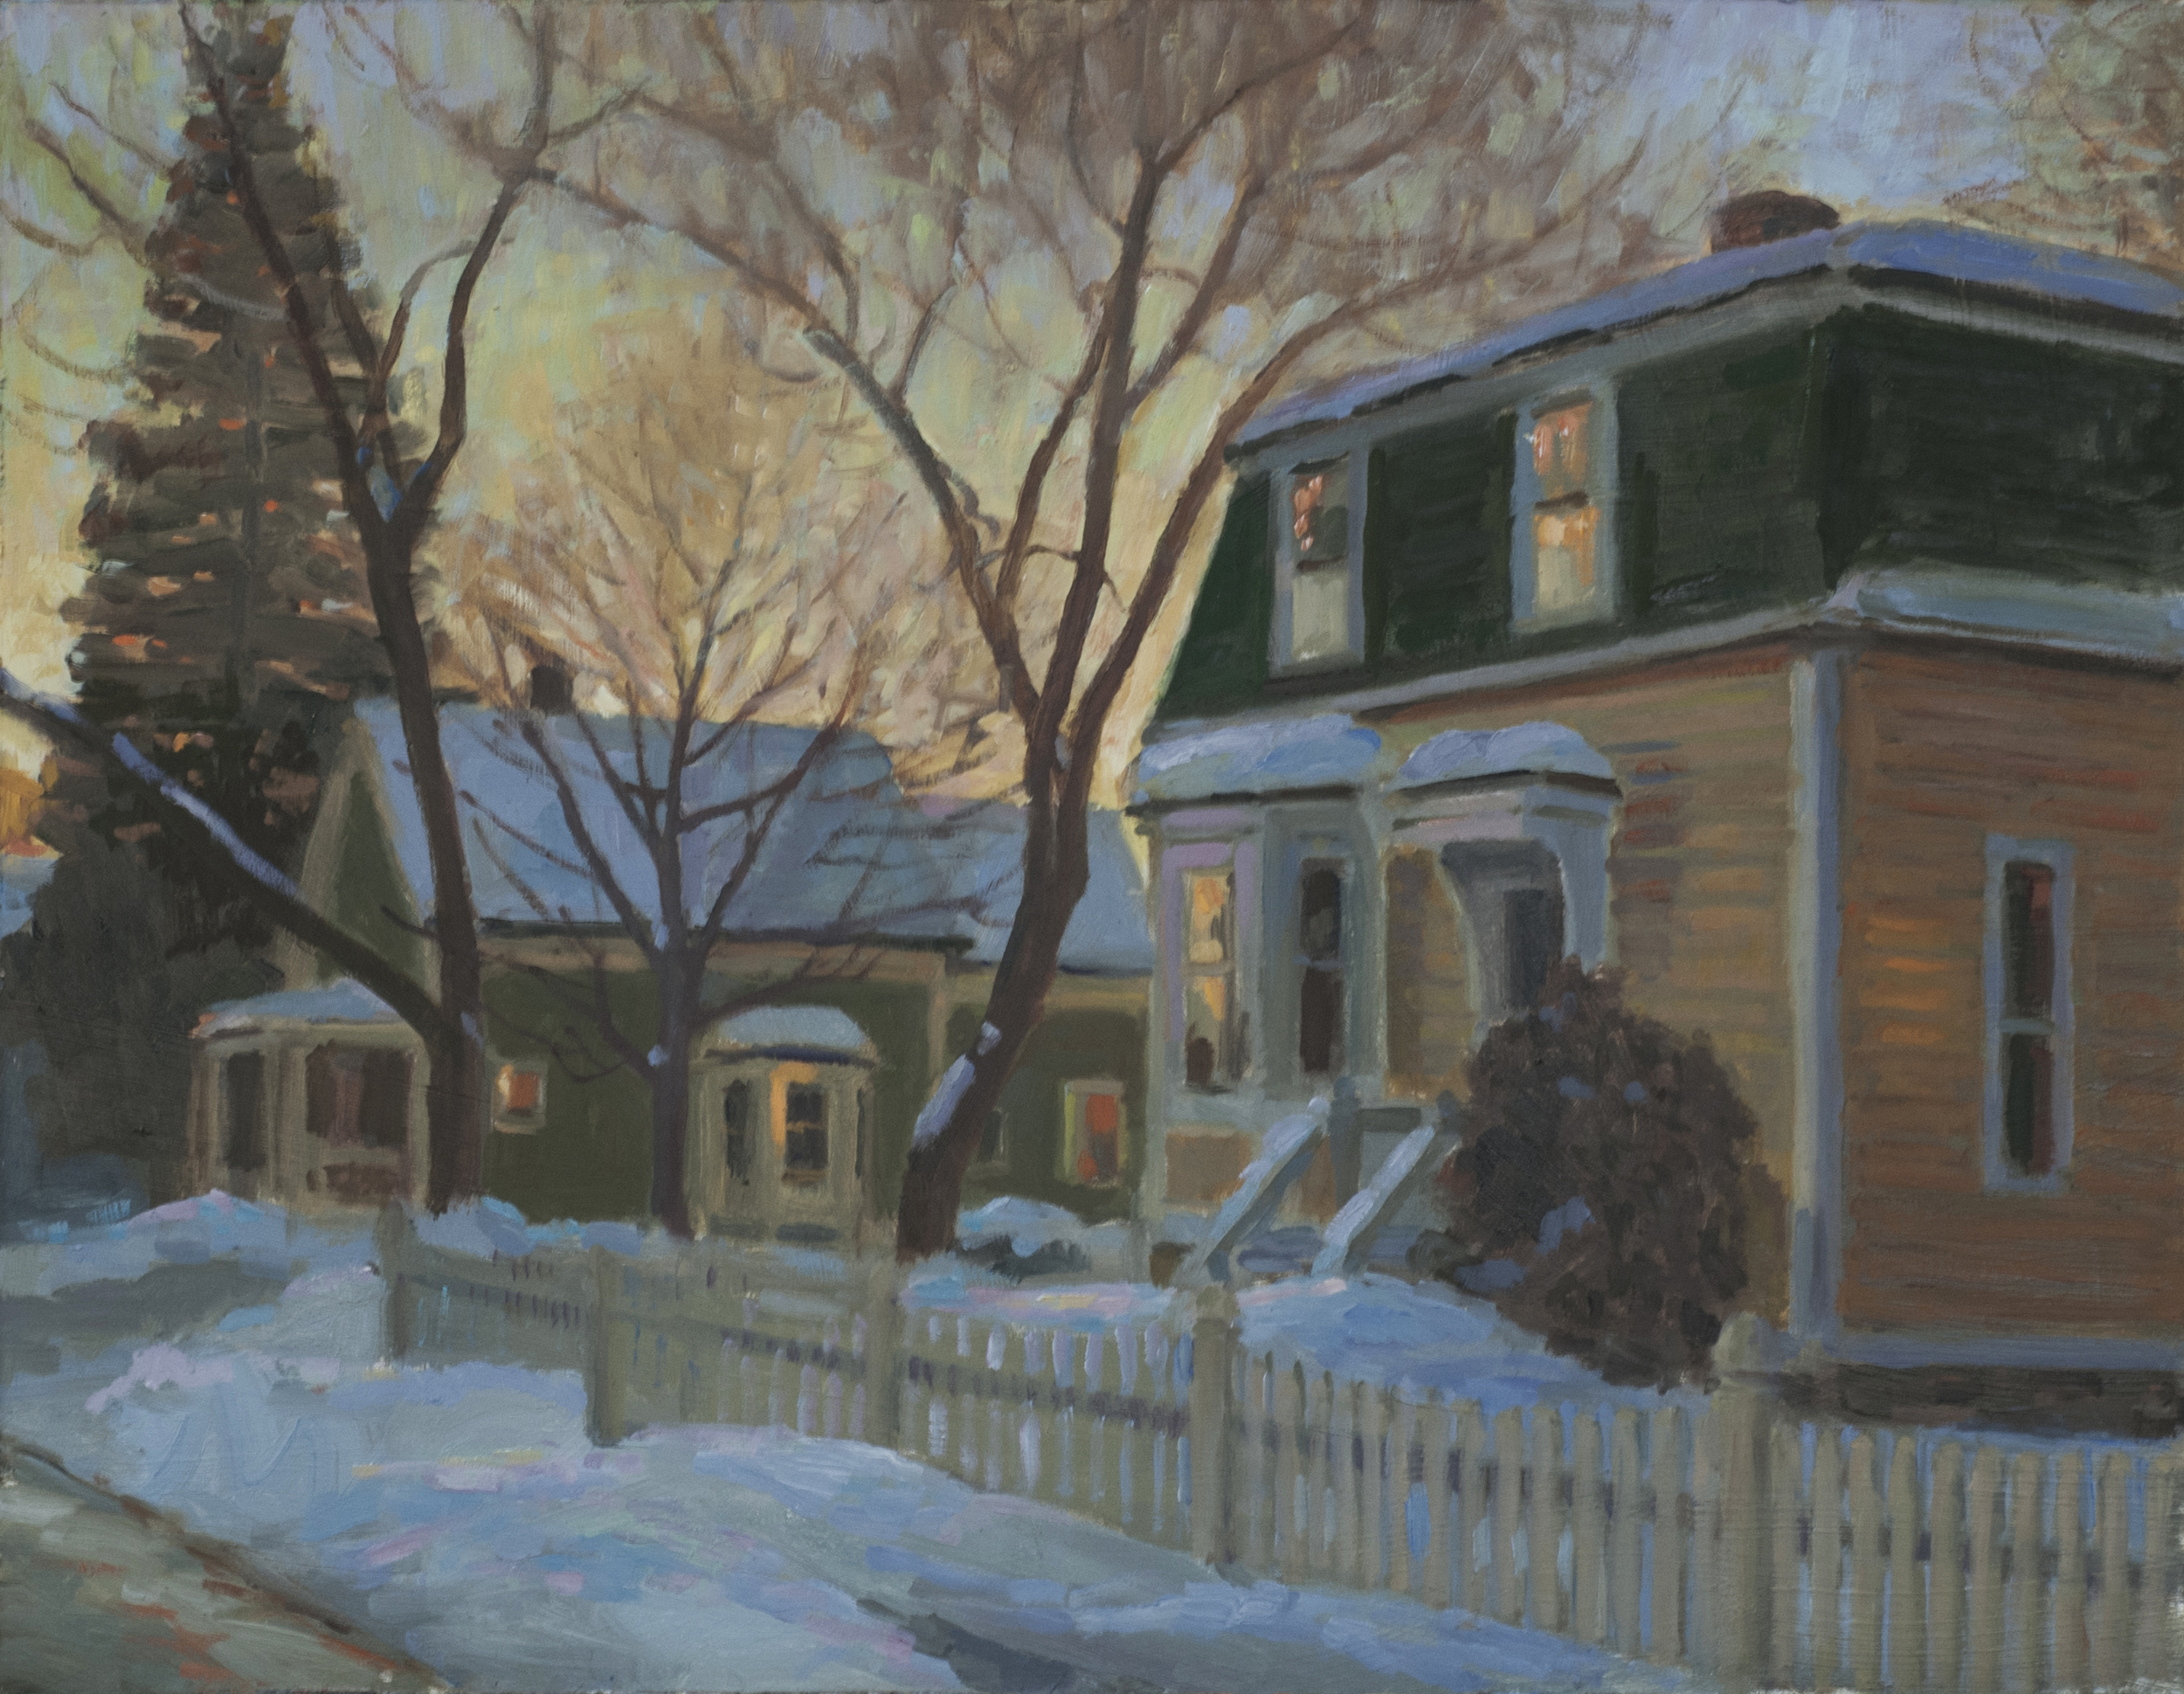 Winter Town Street, Oil on board, 14x18 inches.